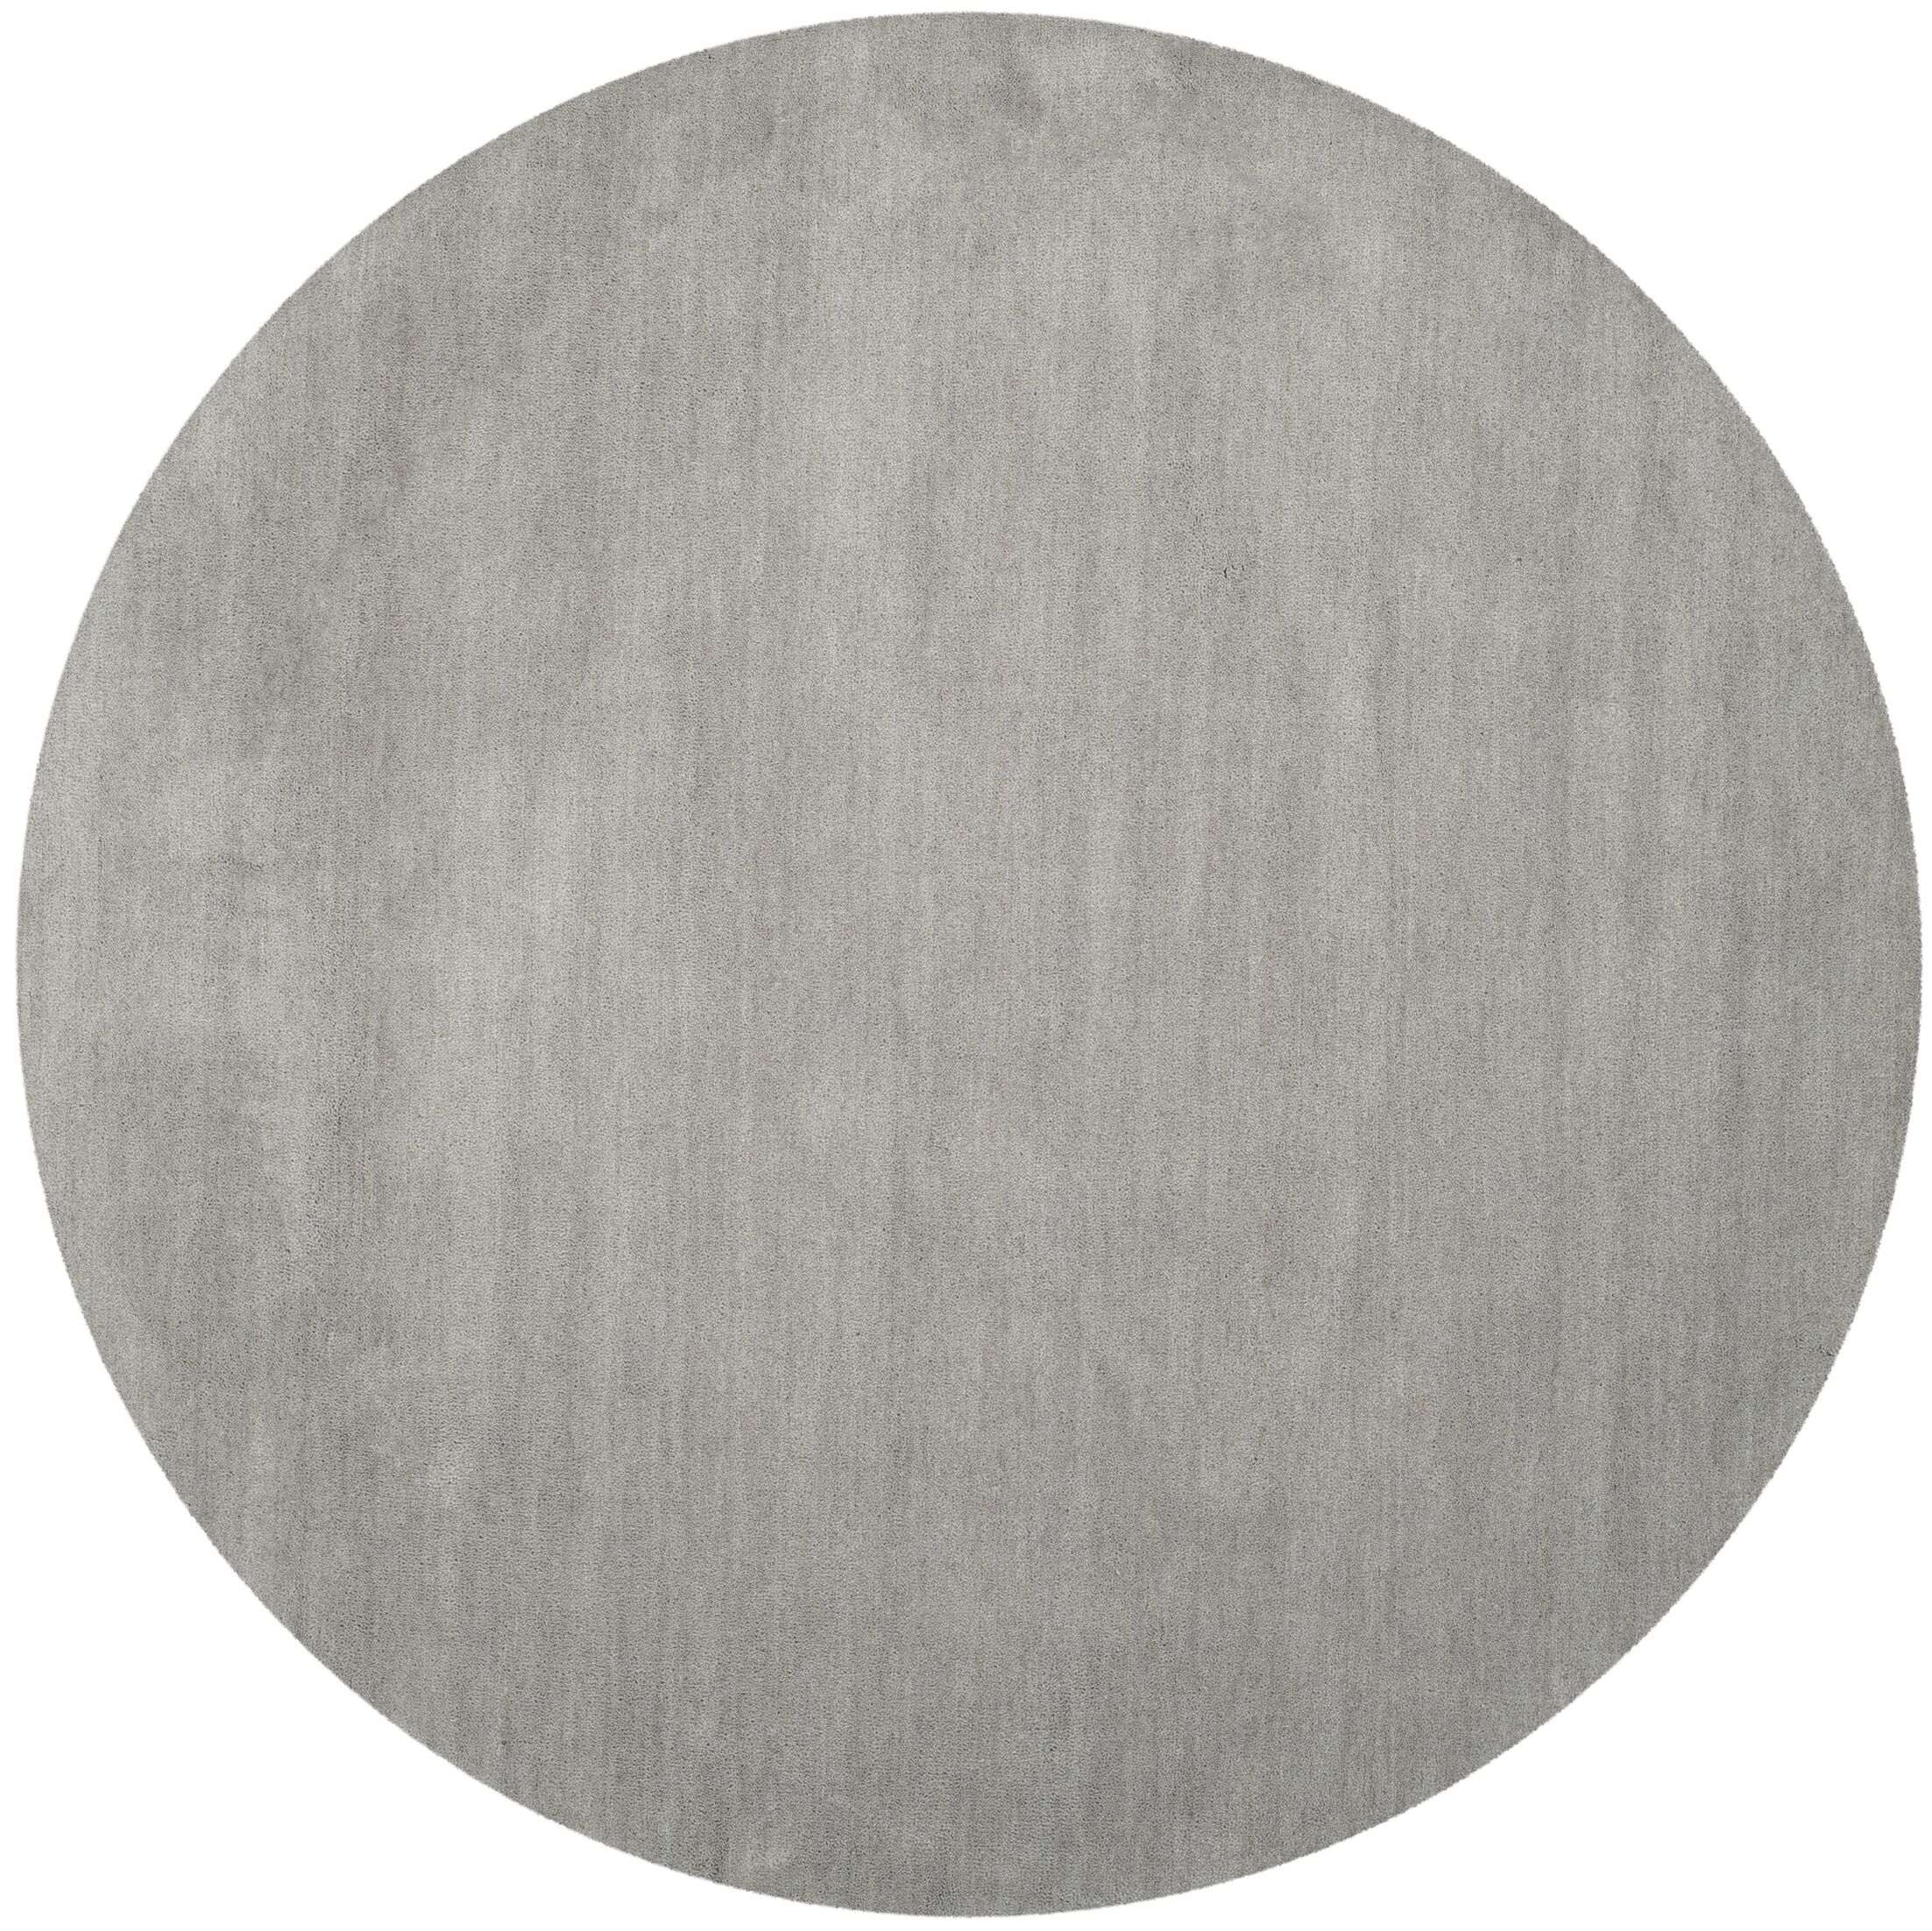 Bargo Hand-Woven Wool Grey Area Rug Rug Size: Square 6'